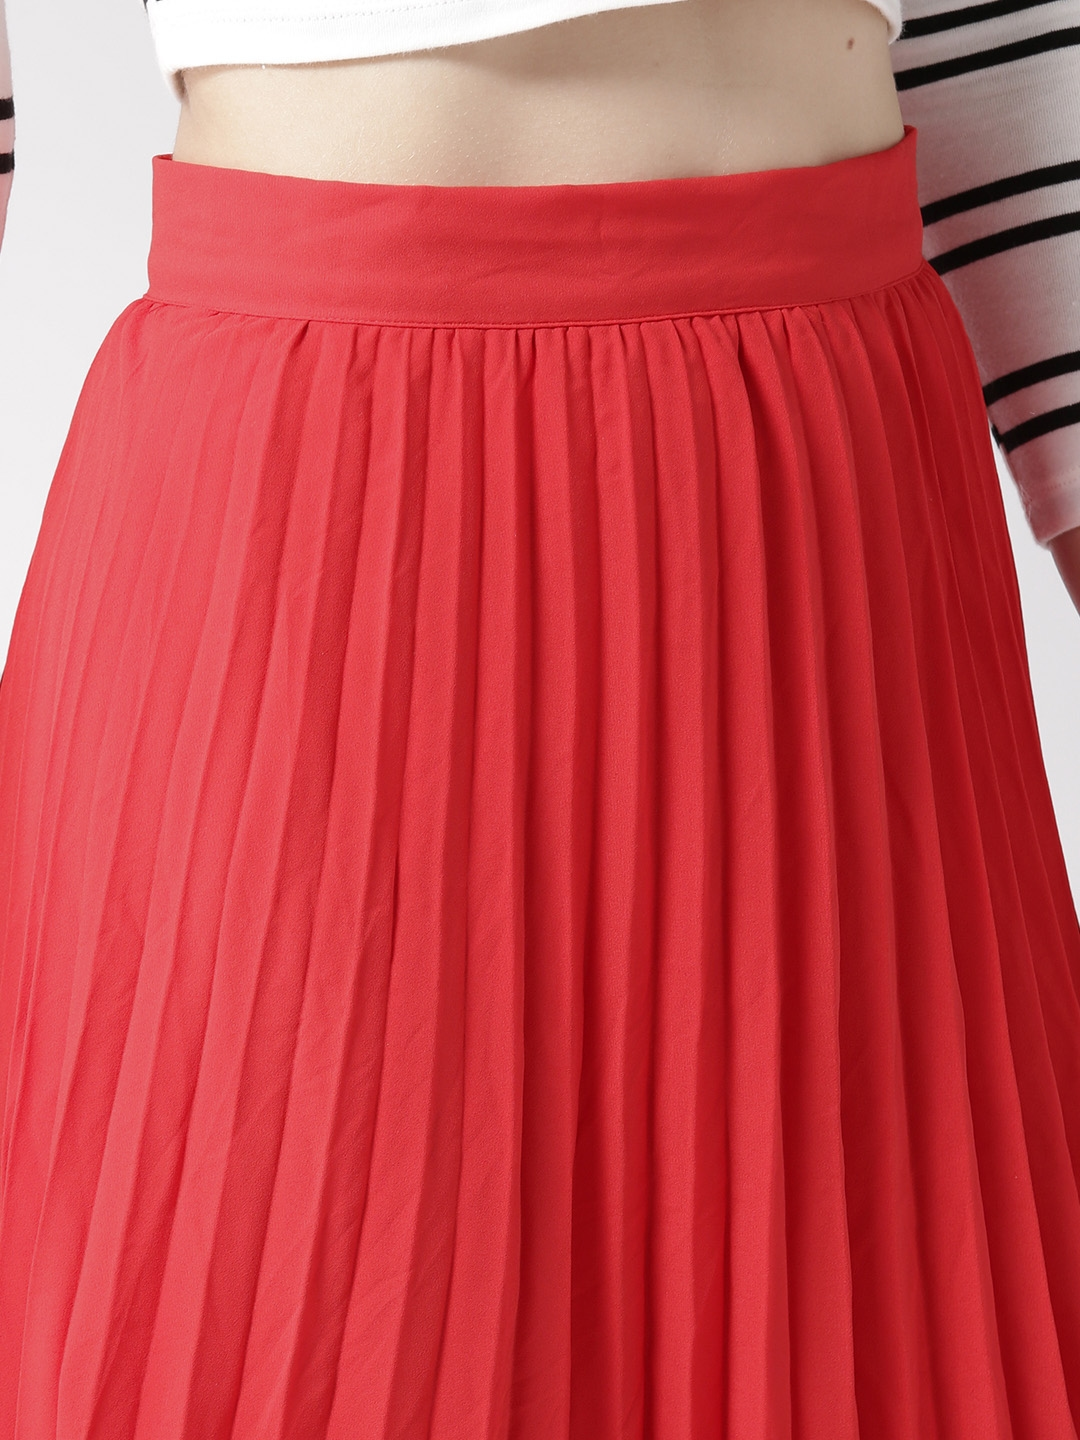 a21ecd4c26 Buy FOREVER 21 Red Accordion Pleat A Line Midi Skirt - Skirts for ...